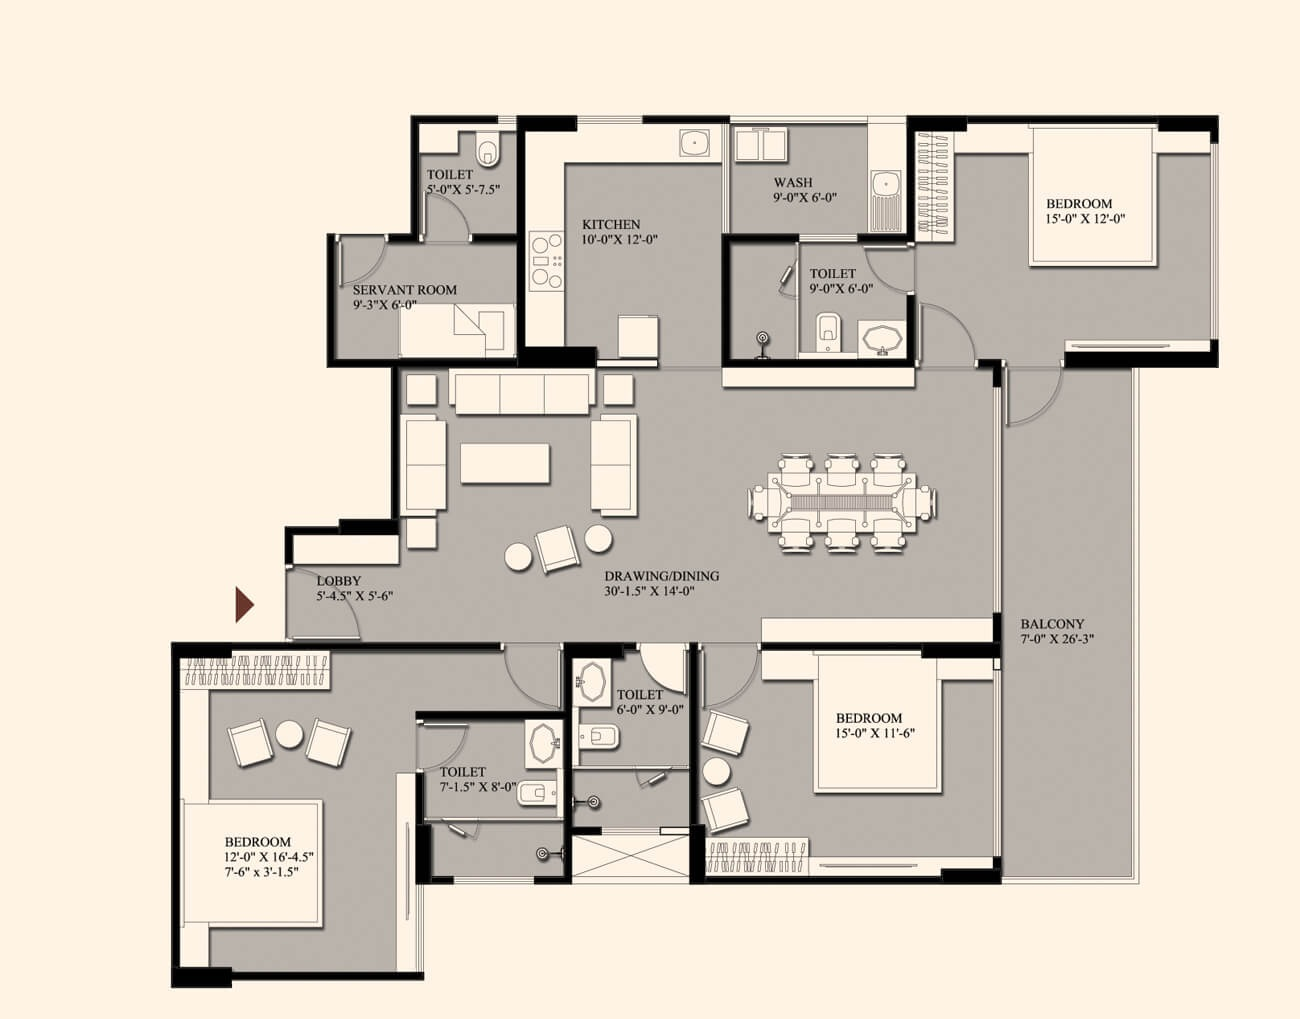 fs realty the crest apartment 3 bhk 1417sqft 20205626145658